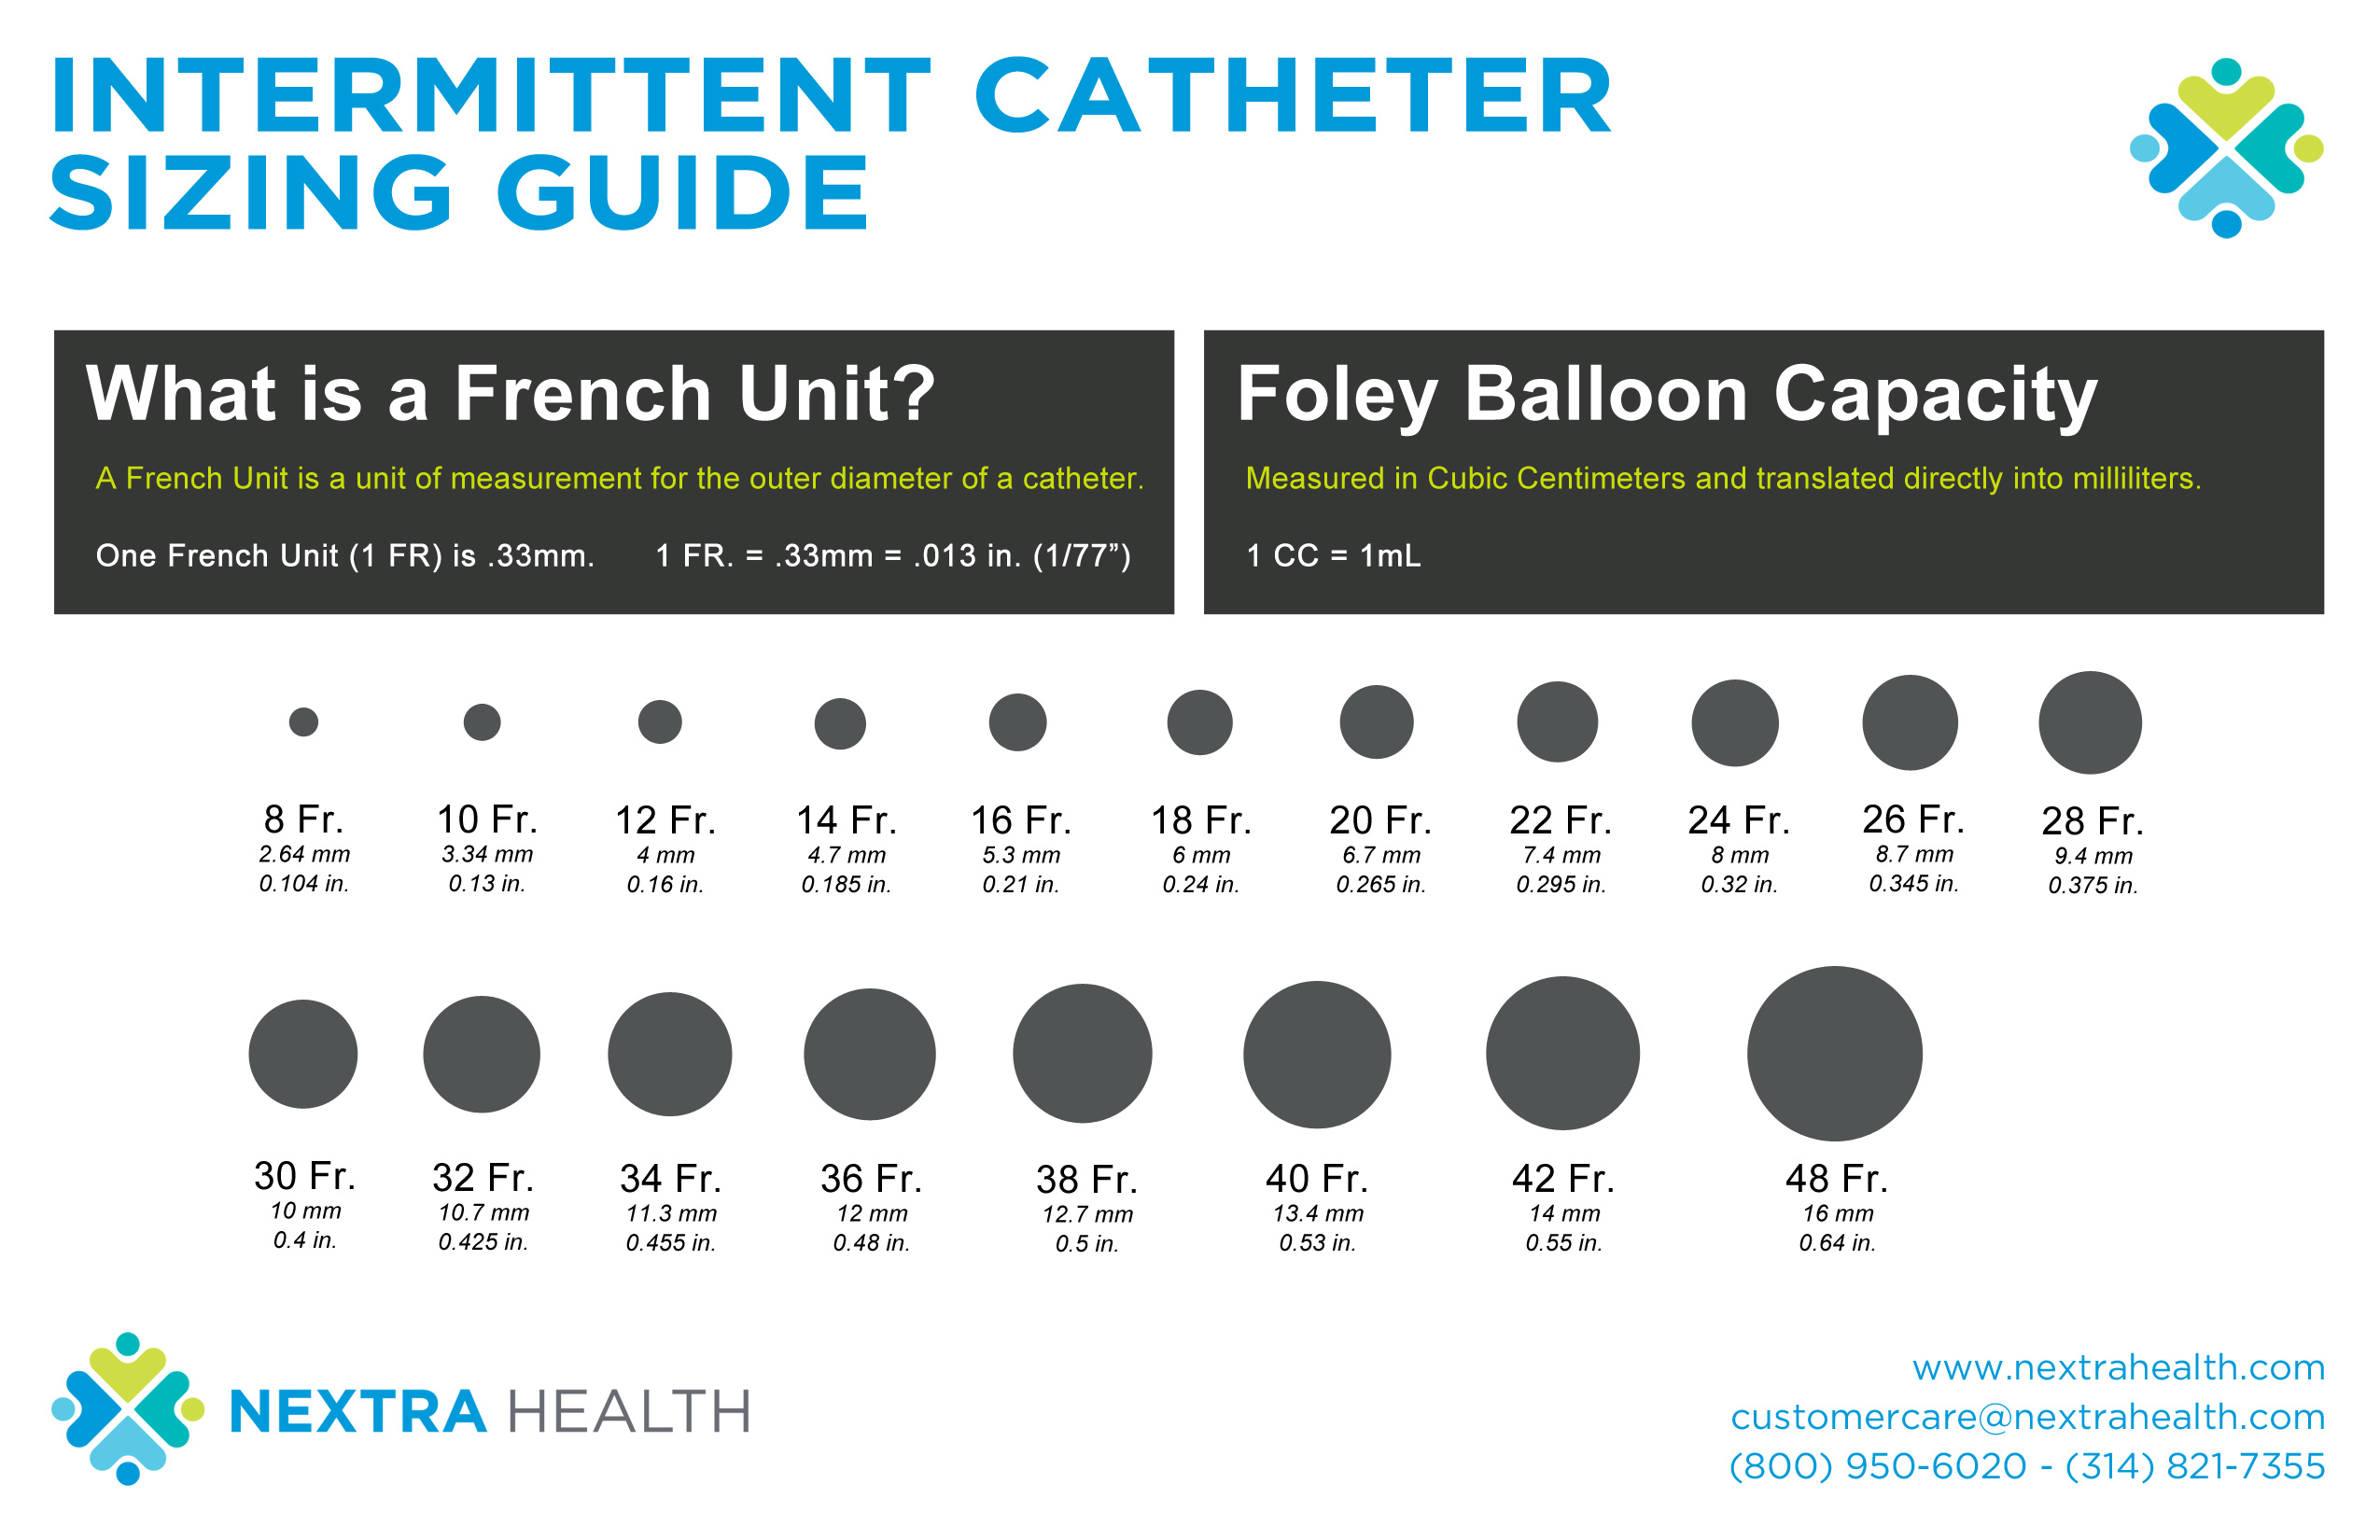 Intermittent Cathter Sizing Guide